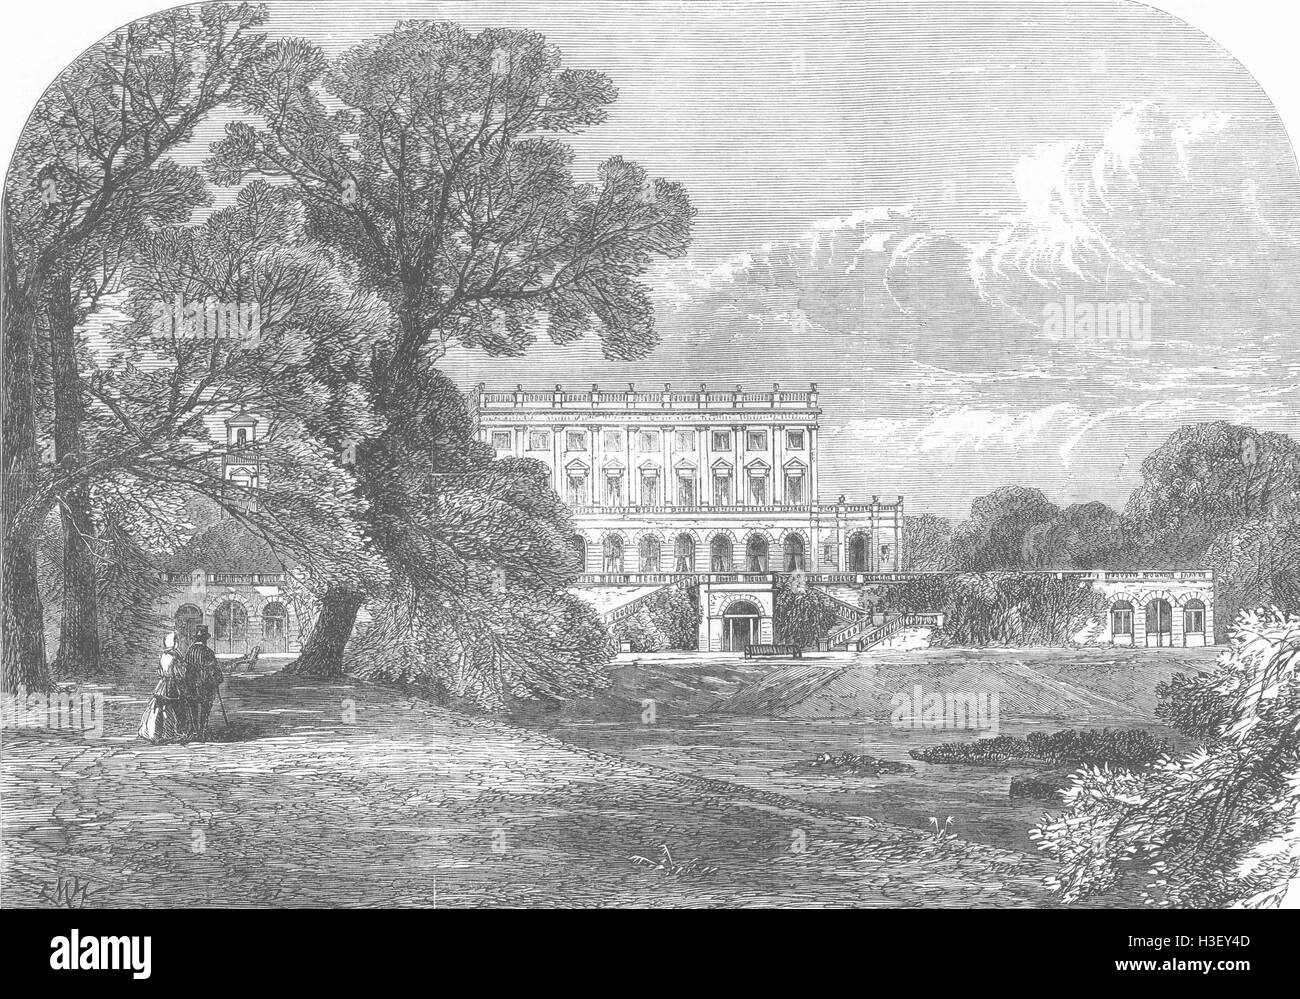 BUCKS Cliveden 1866. Illustrated London News - Stock Image